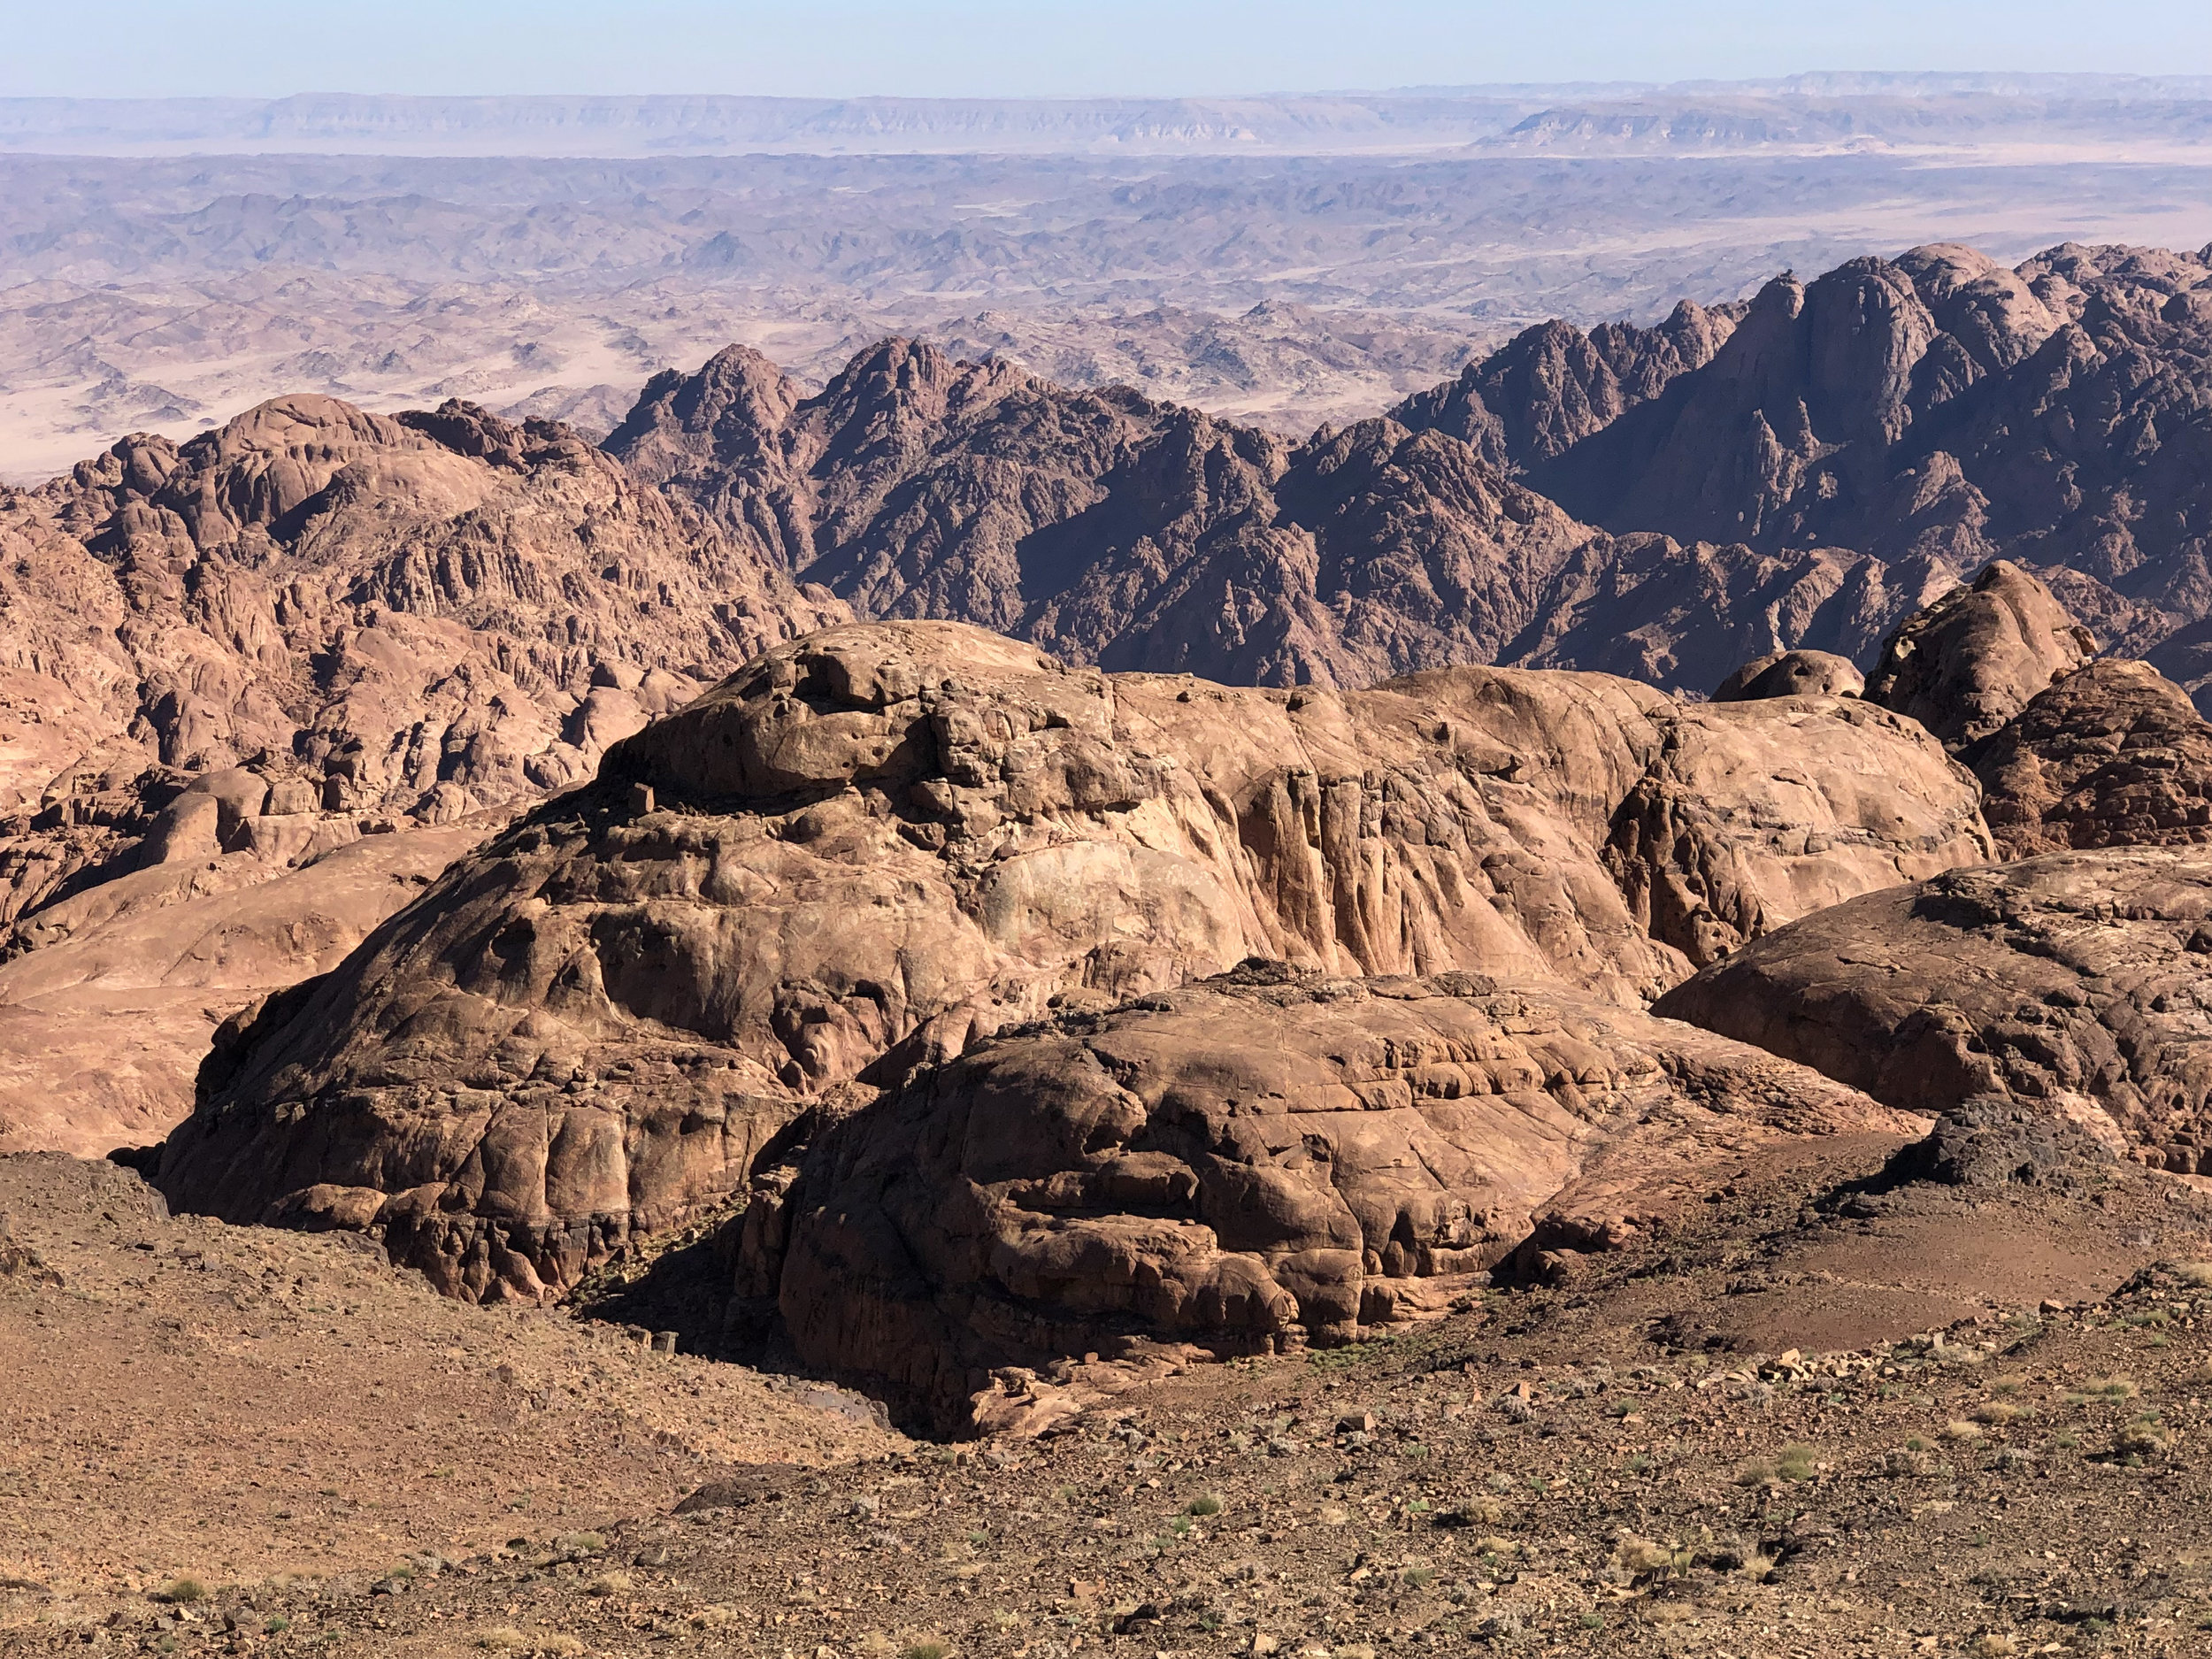 St Catherines protected area, Sinai - Egypt - Wild Earth Expeditions